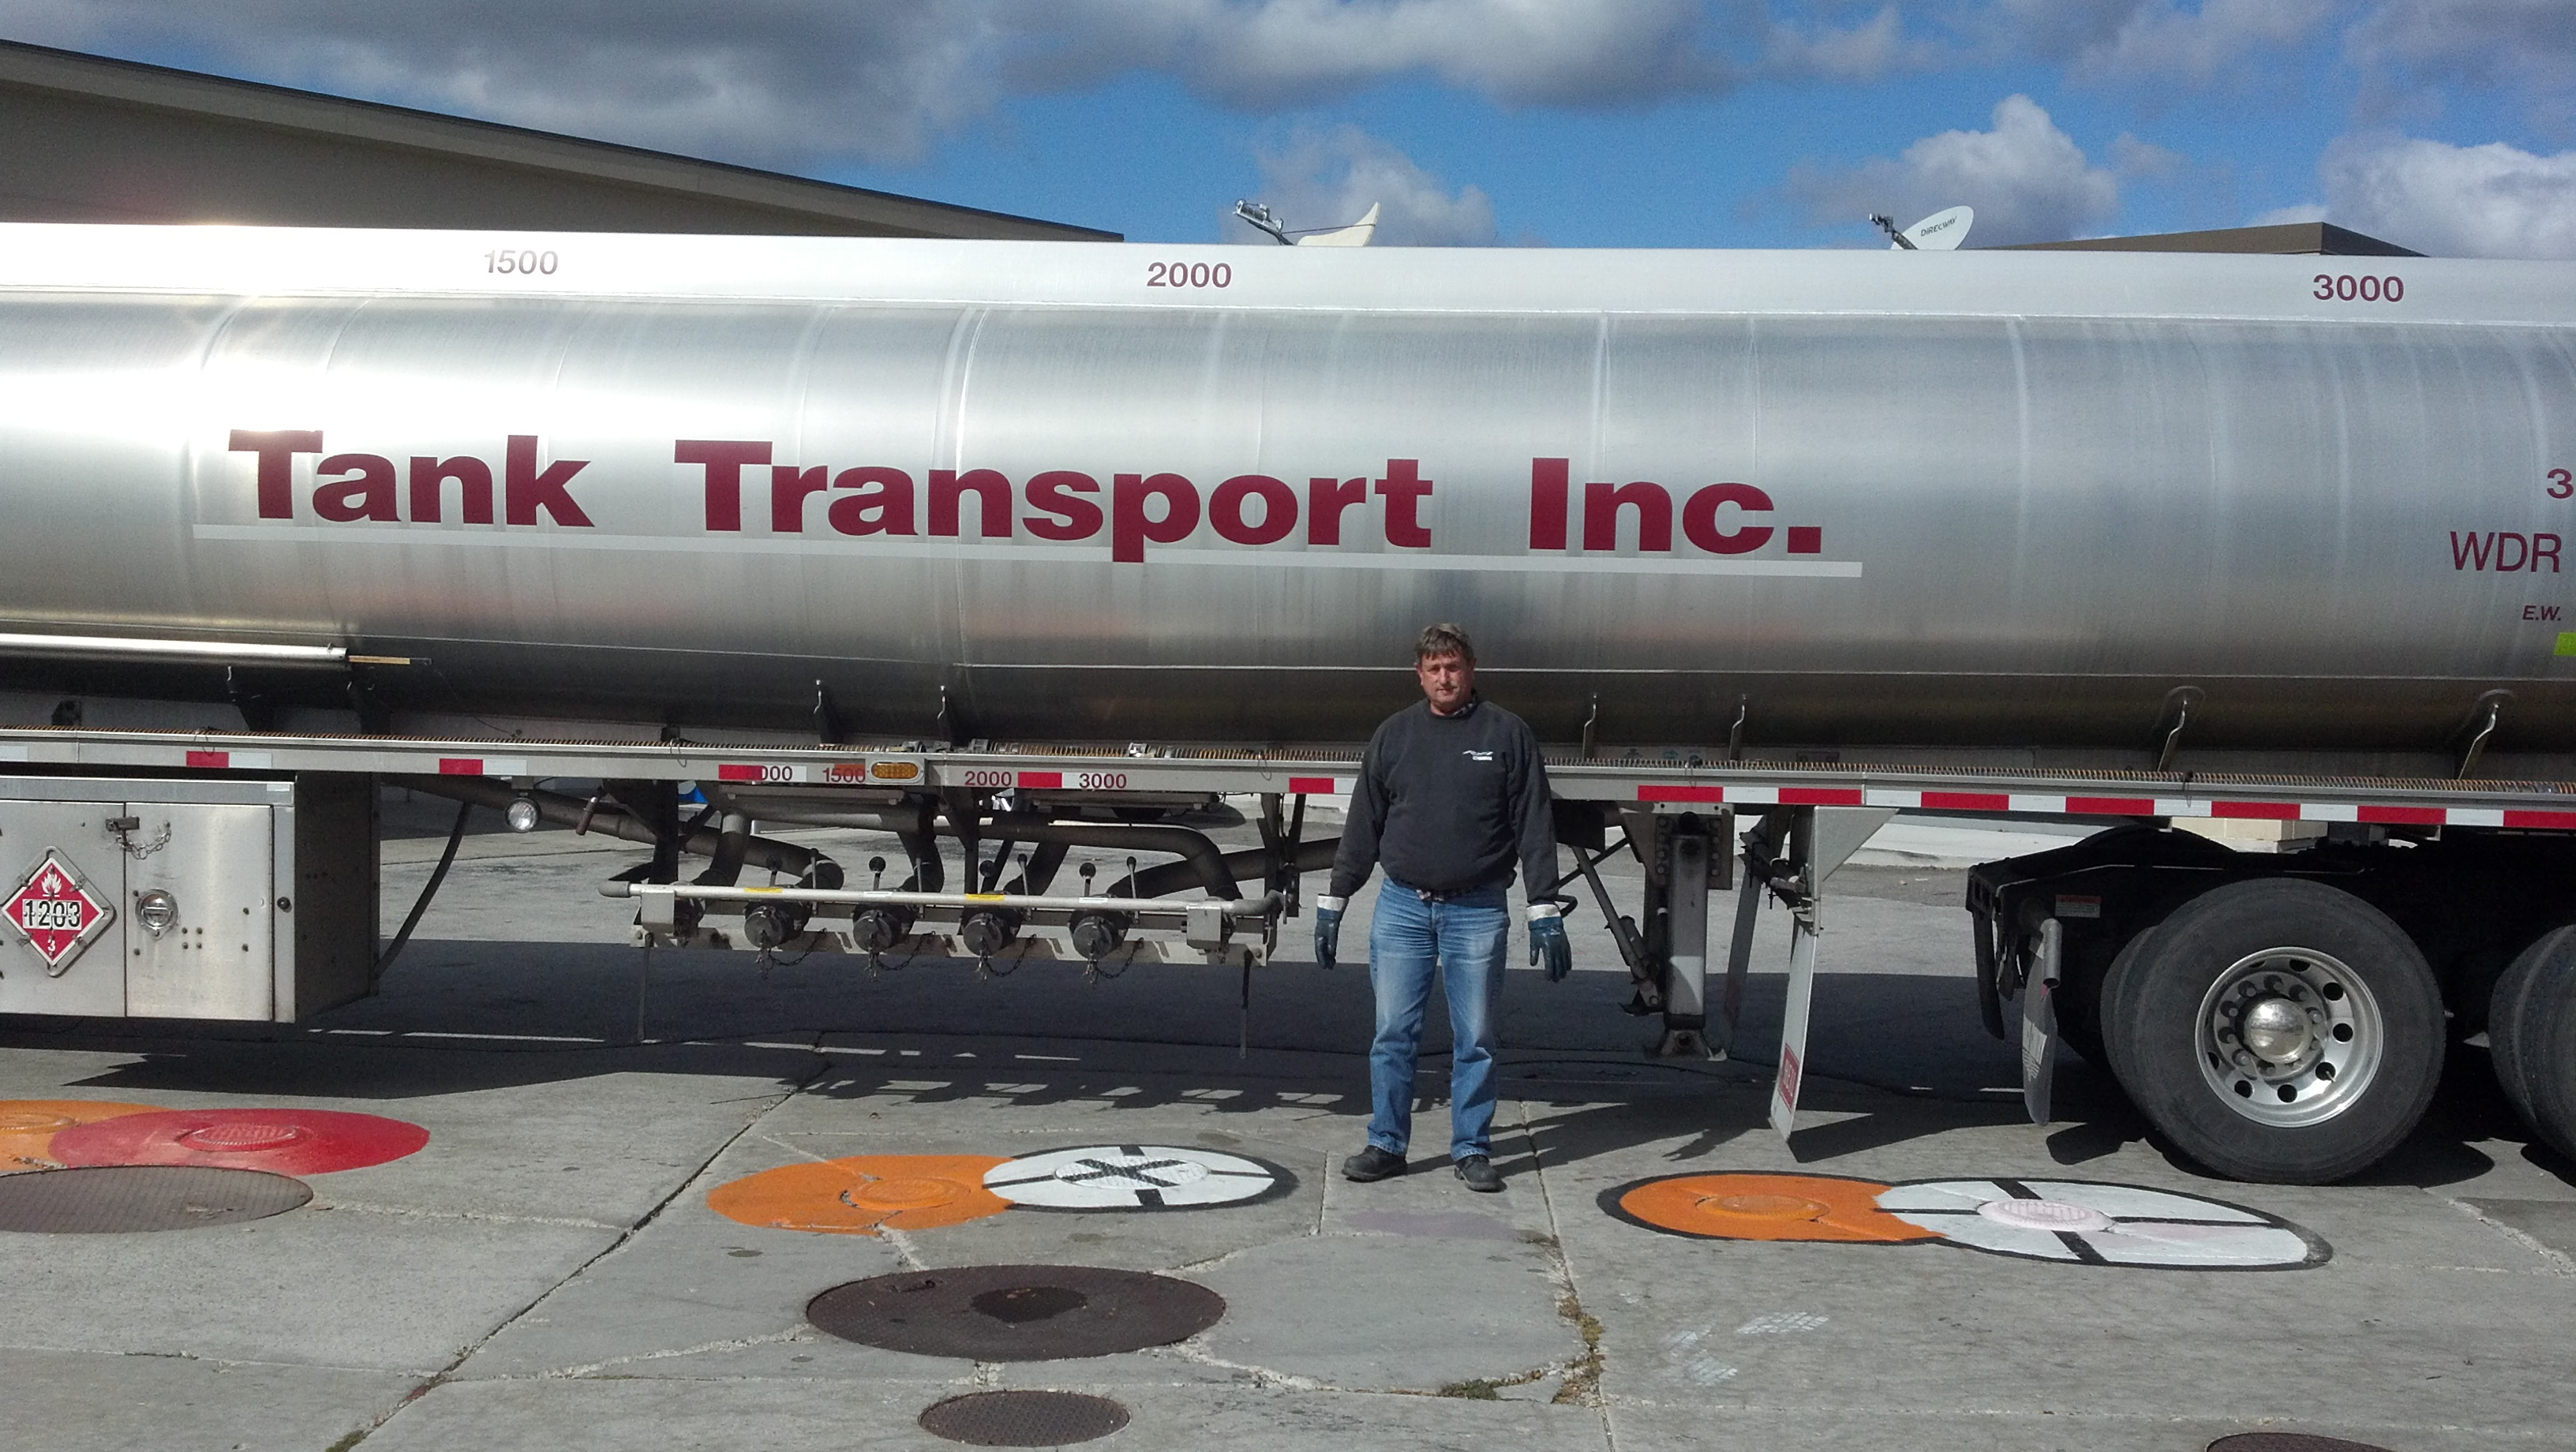 Dave Greve Tank Transport Teamster Member with 27 years in the tank business, soon to be fighting the elements delivering fuel we rely on in our daily life.